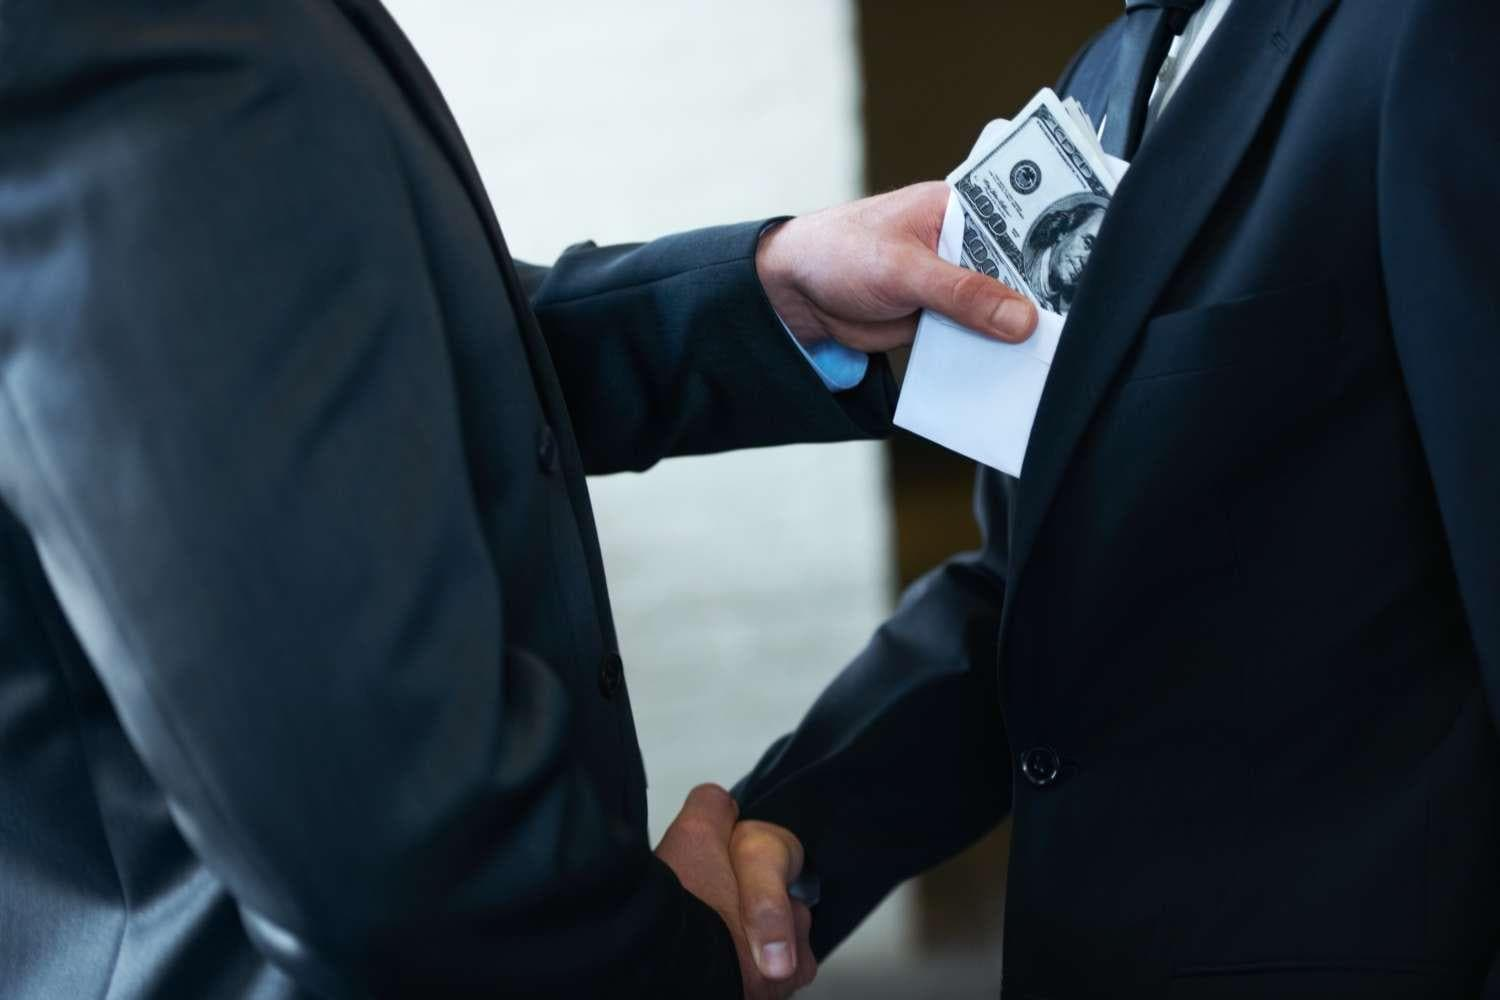 Two corporate businessmen shaking hands while one man places money in the other